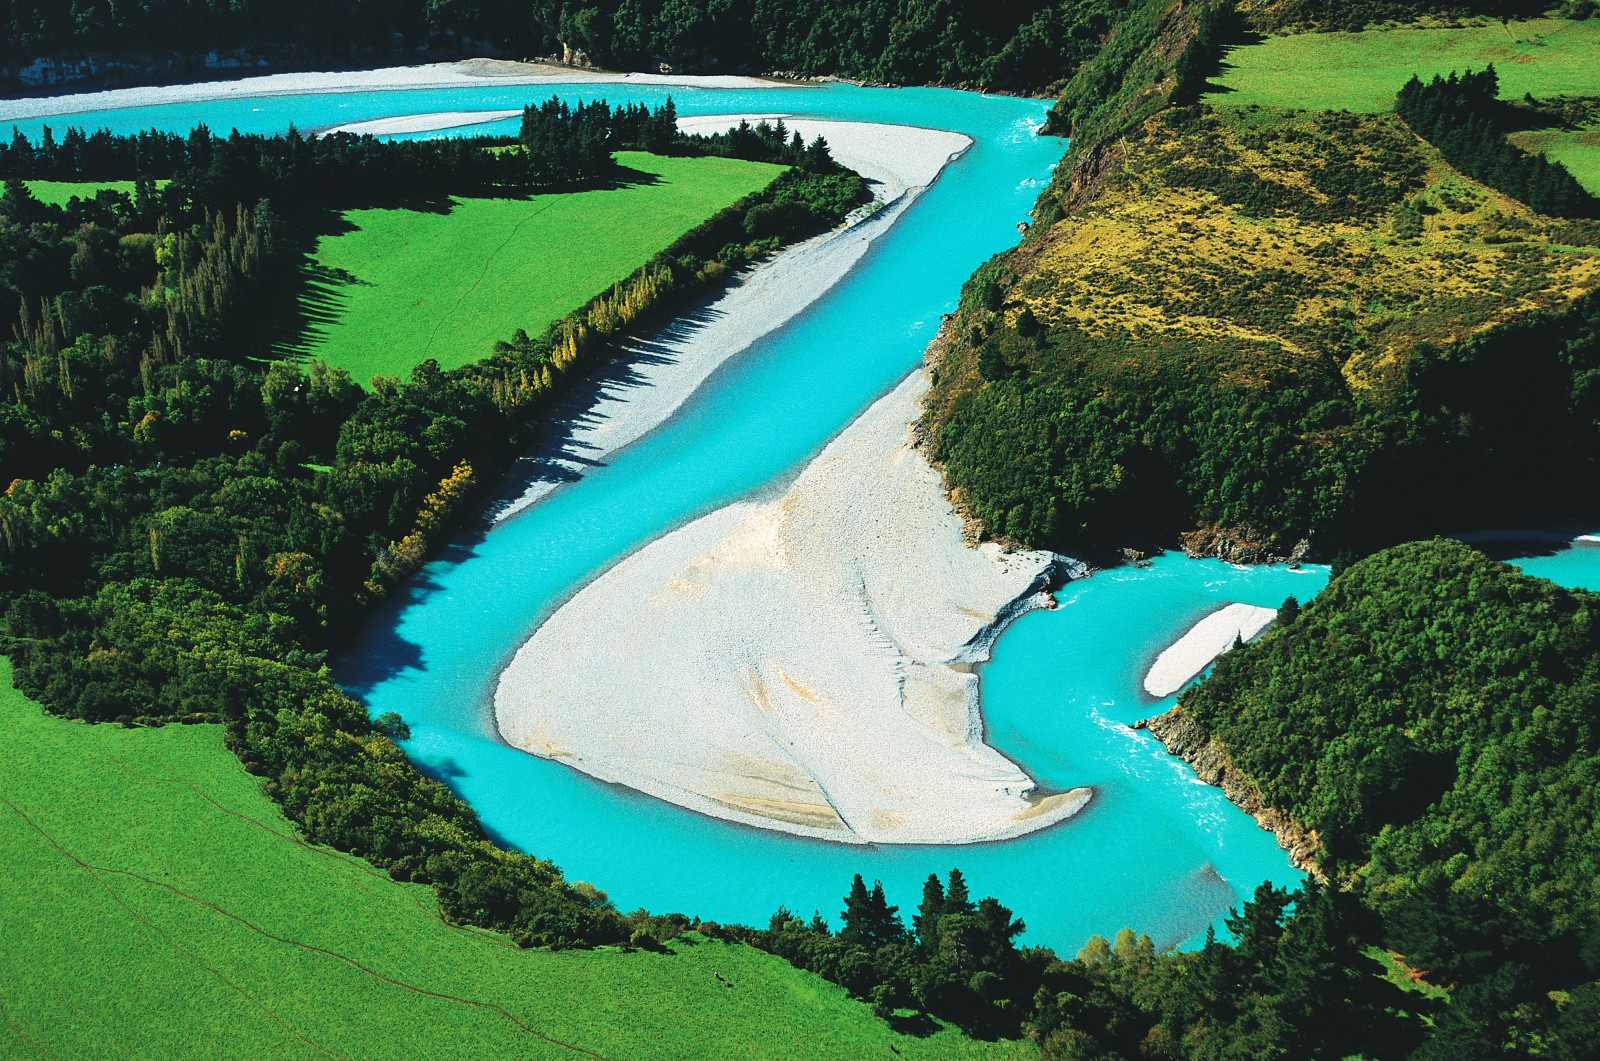 Rakaia River: Near Mt Hutt, the mighty Rakaia River--for most of its course a braided network of meanders snaking across a gravel bed several kilometres wide--is constrained into a single surging channel. Glacial melt, from the river's source in the heart of the Southern Alps, gives it a milky turquoise colour.